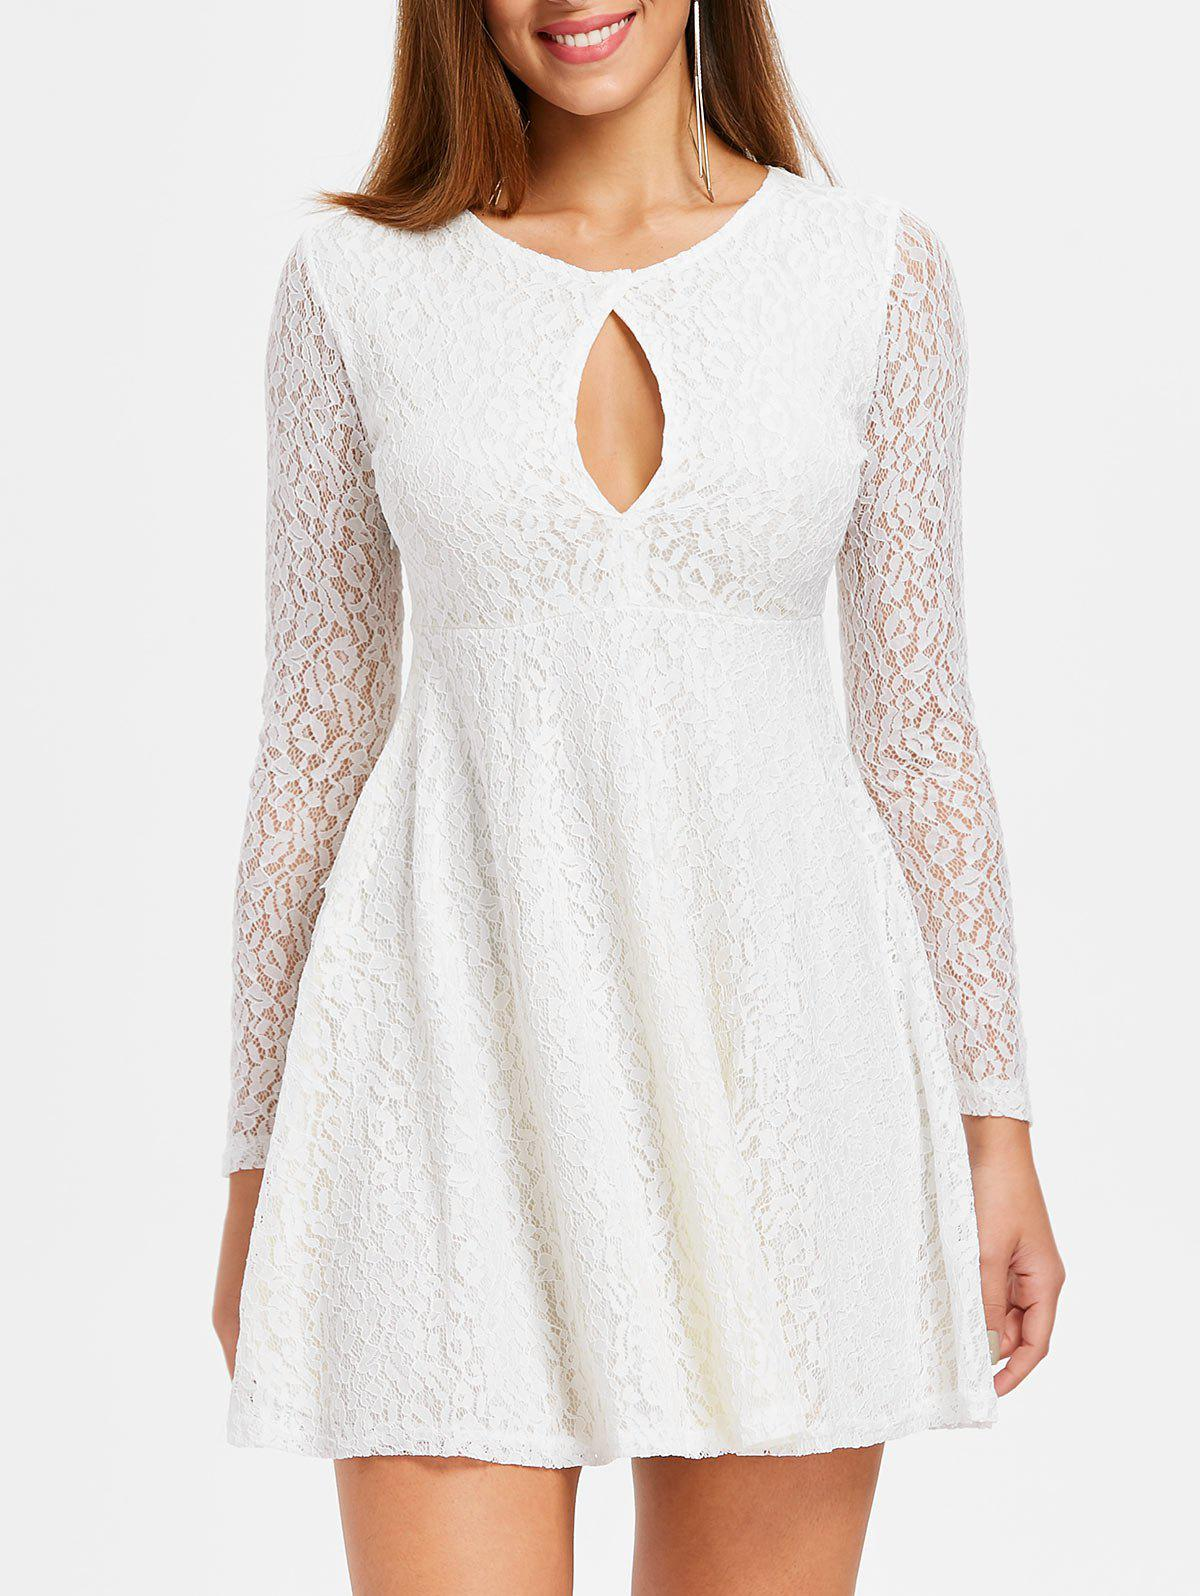 Cut Out A Line Lace Dress - WHITE XL